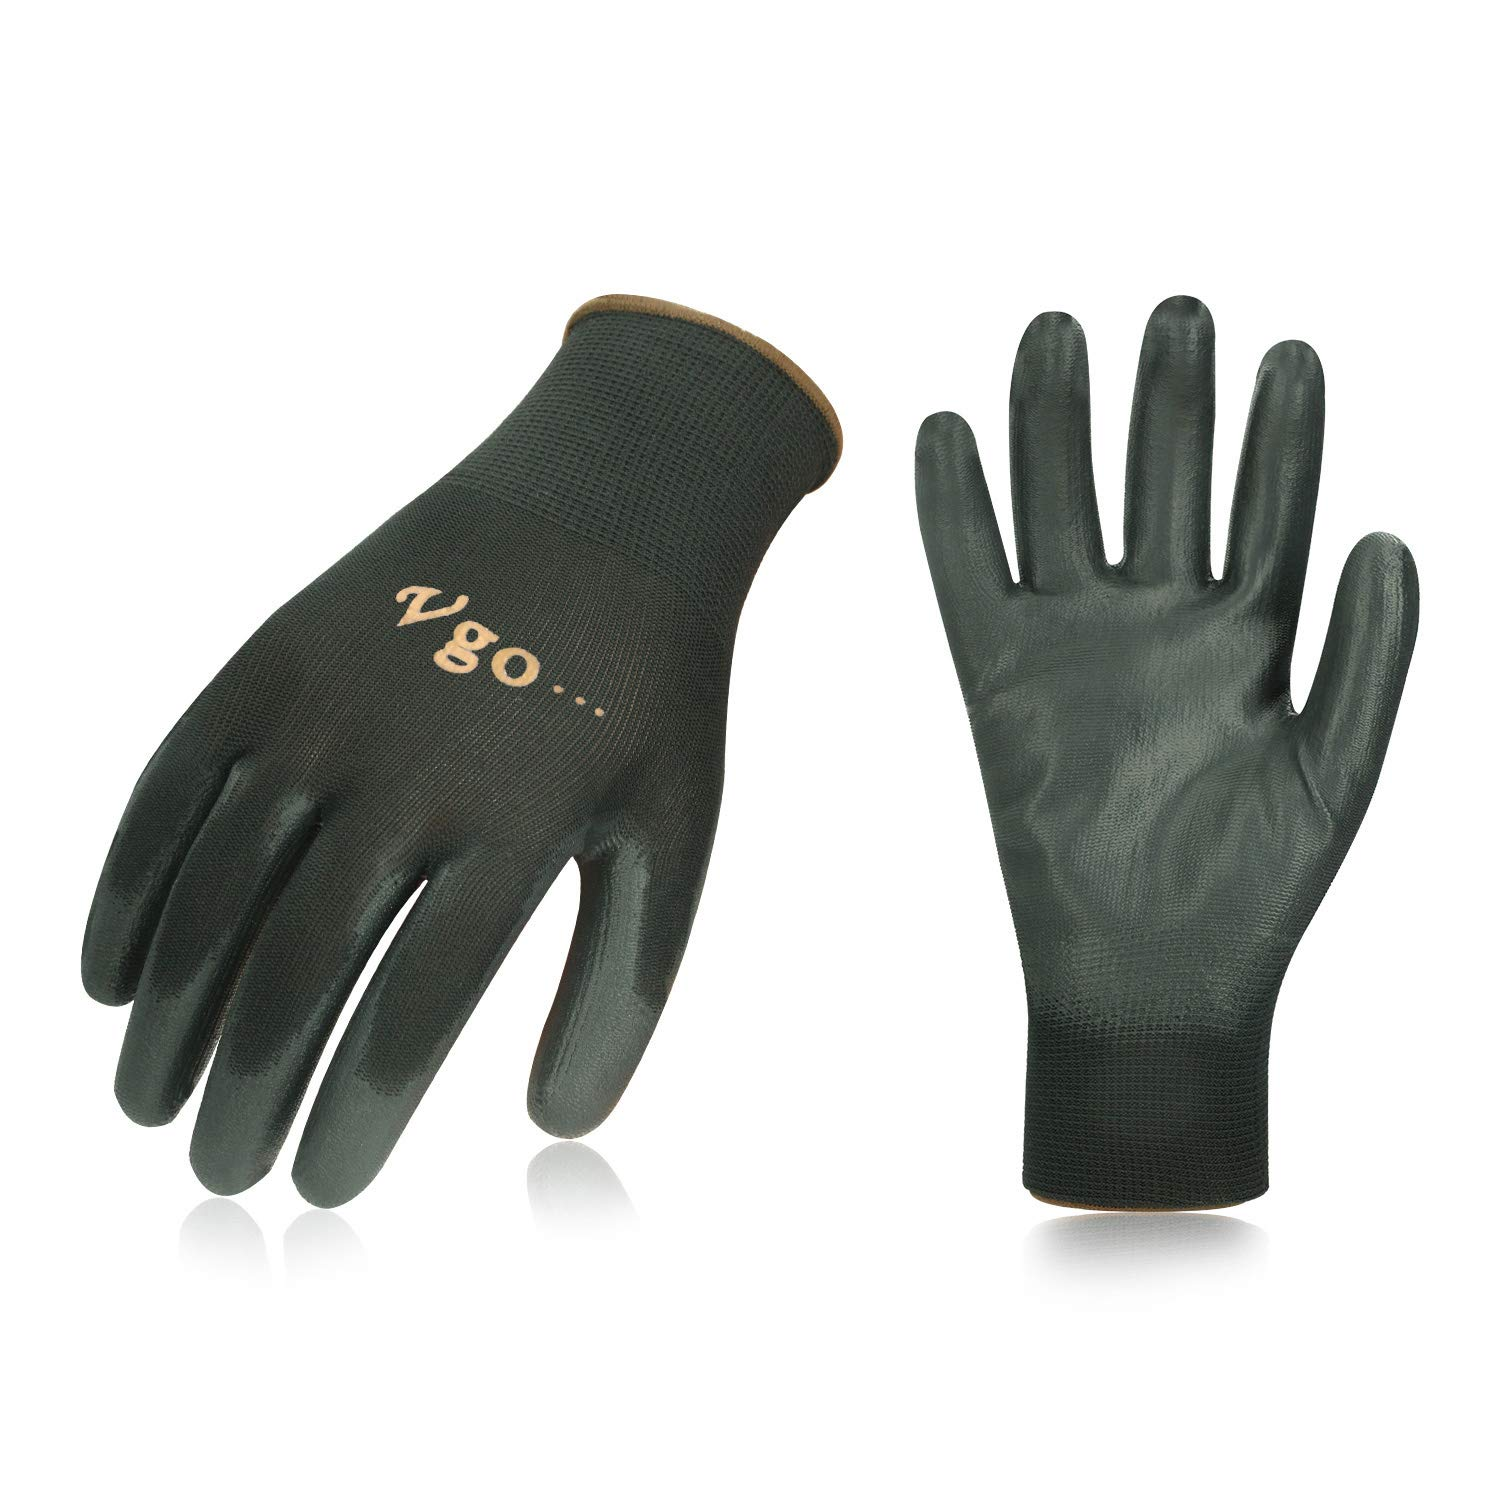 Size S, Black, PU2103 Builder Gloves Vgo 15Pairs PU Coated Gardening Gloves and Work Gloves for Men Multipurpose